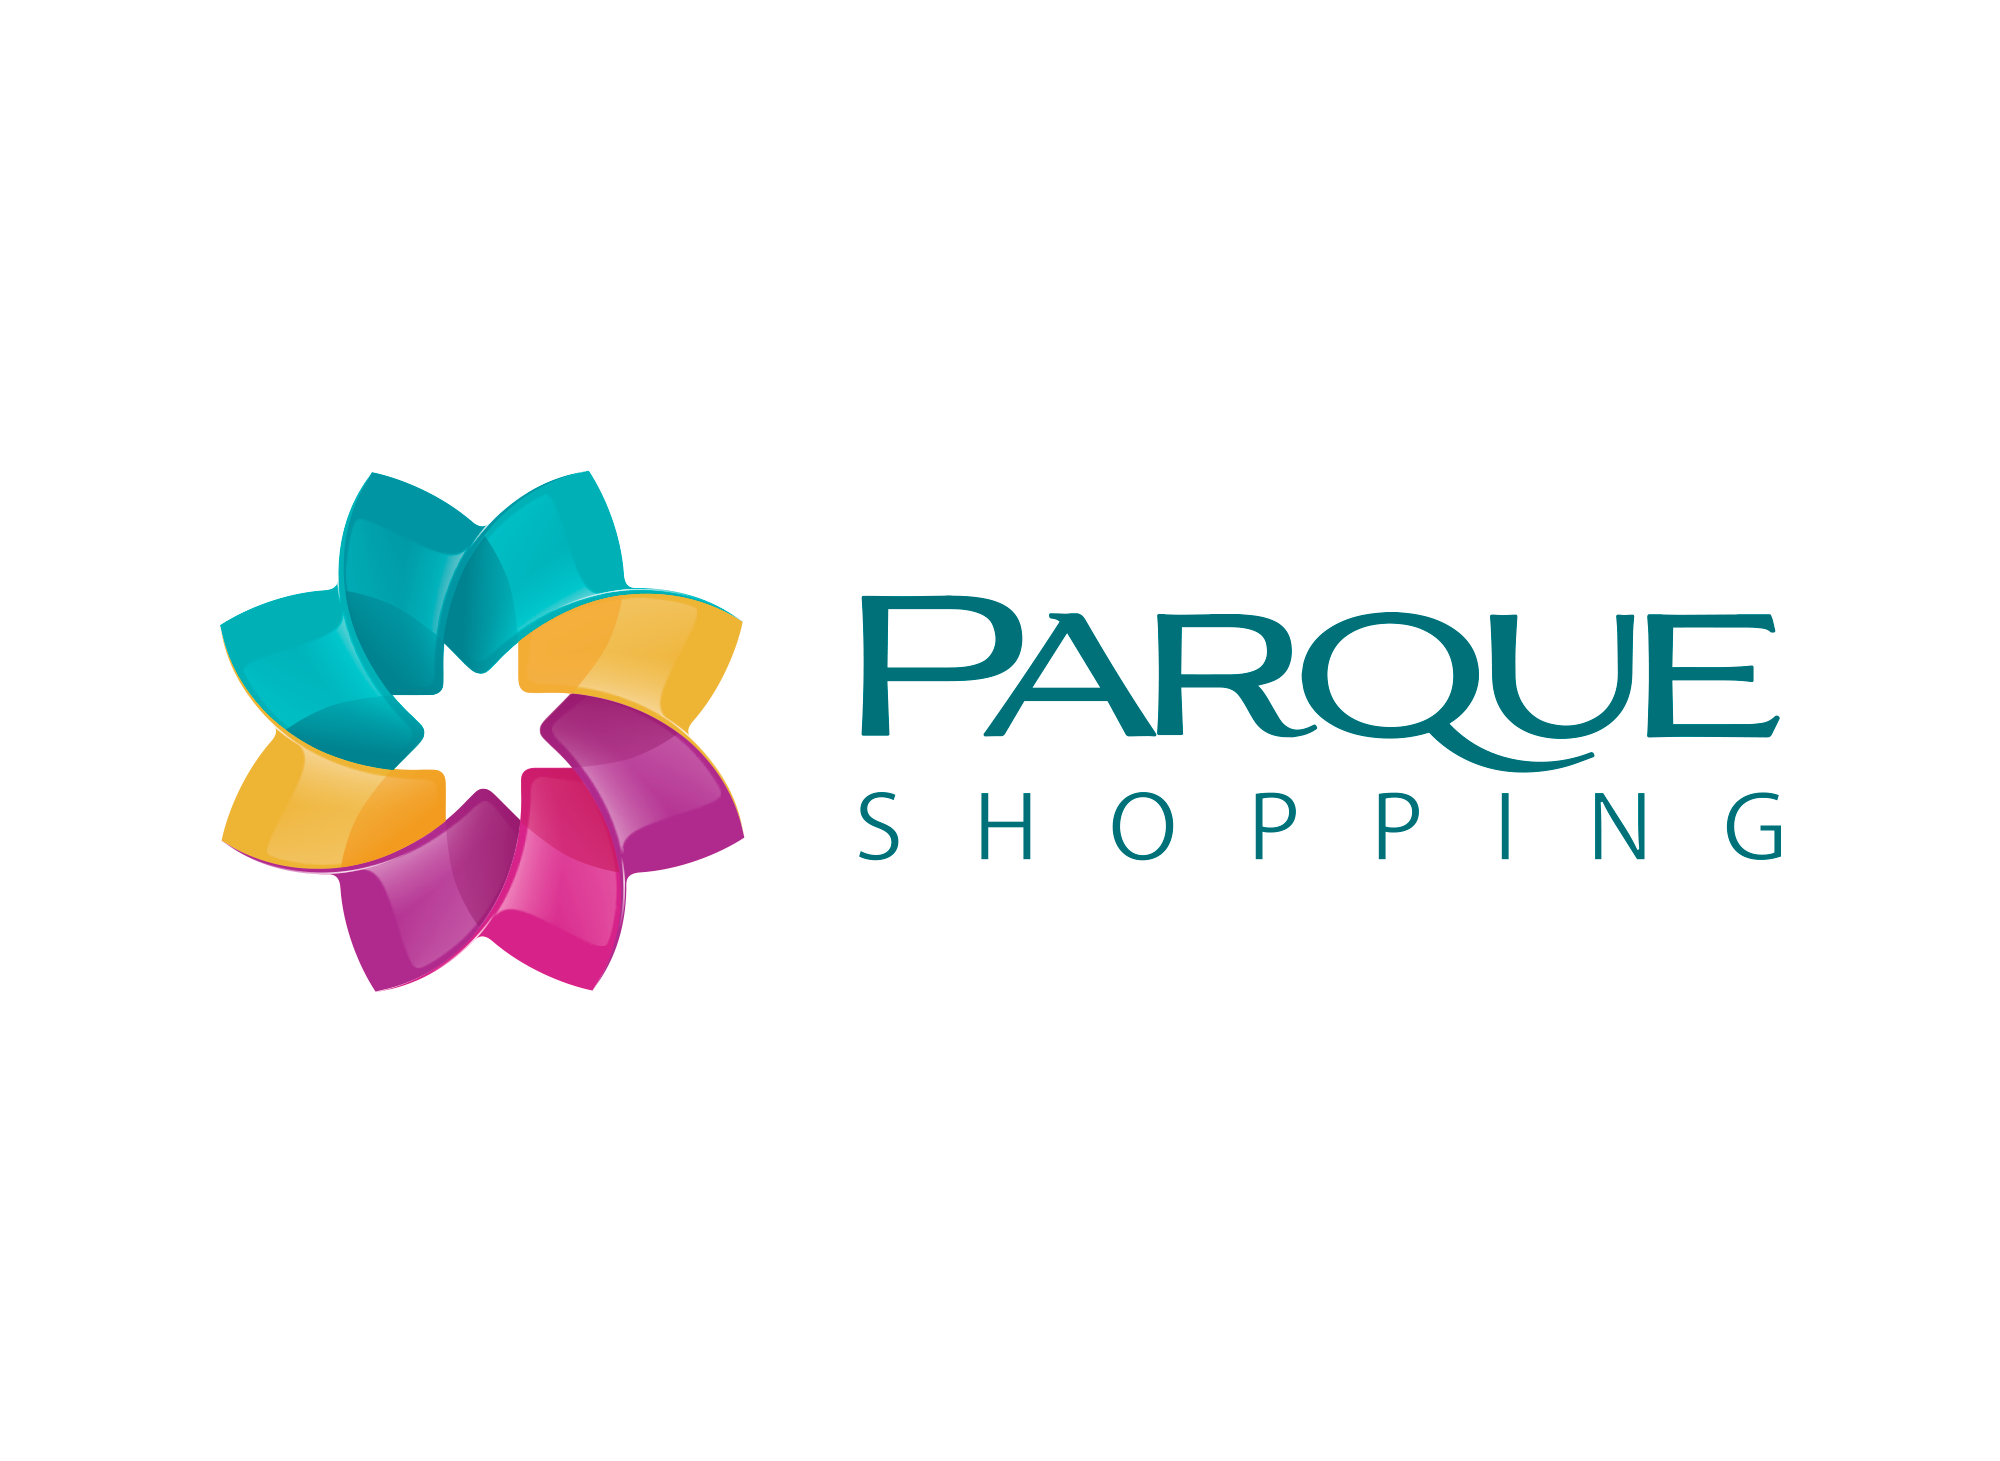 parque-shopping-fortaleza-clientes-atendidos-agencia-diretriz-digital-marketing-fortaleza